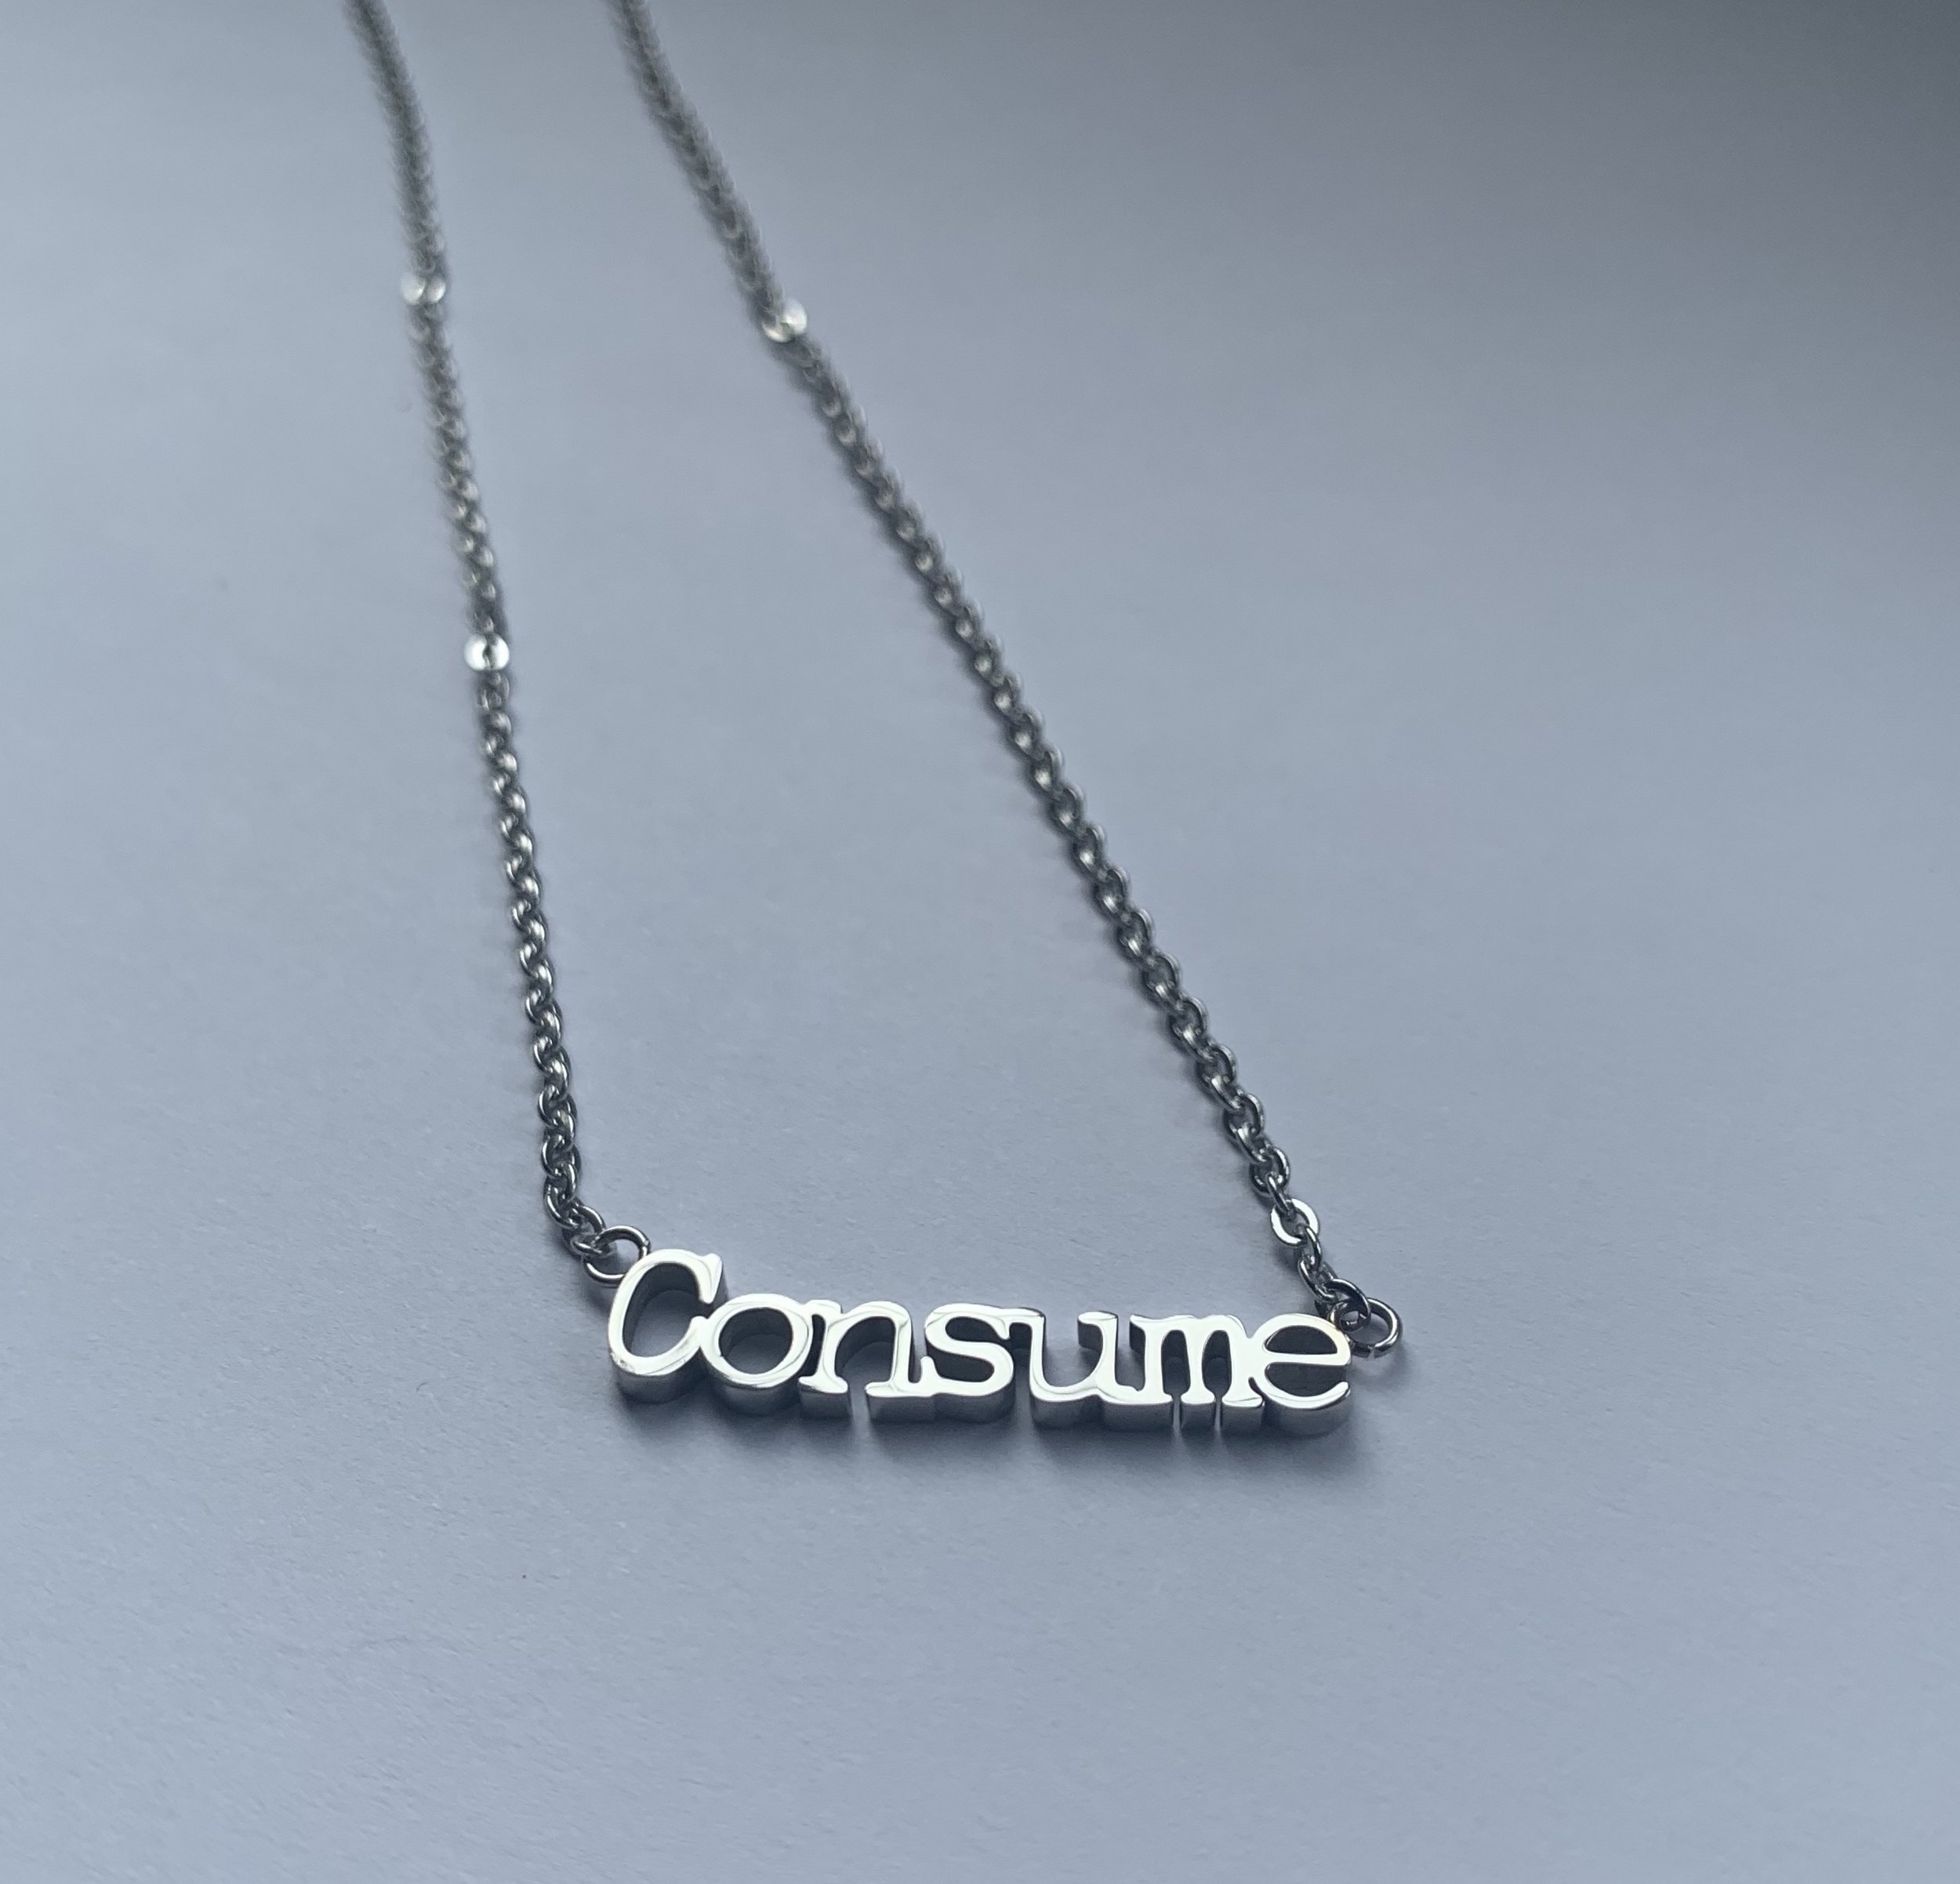 Consume necklaces - coming soon